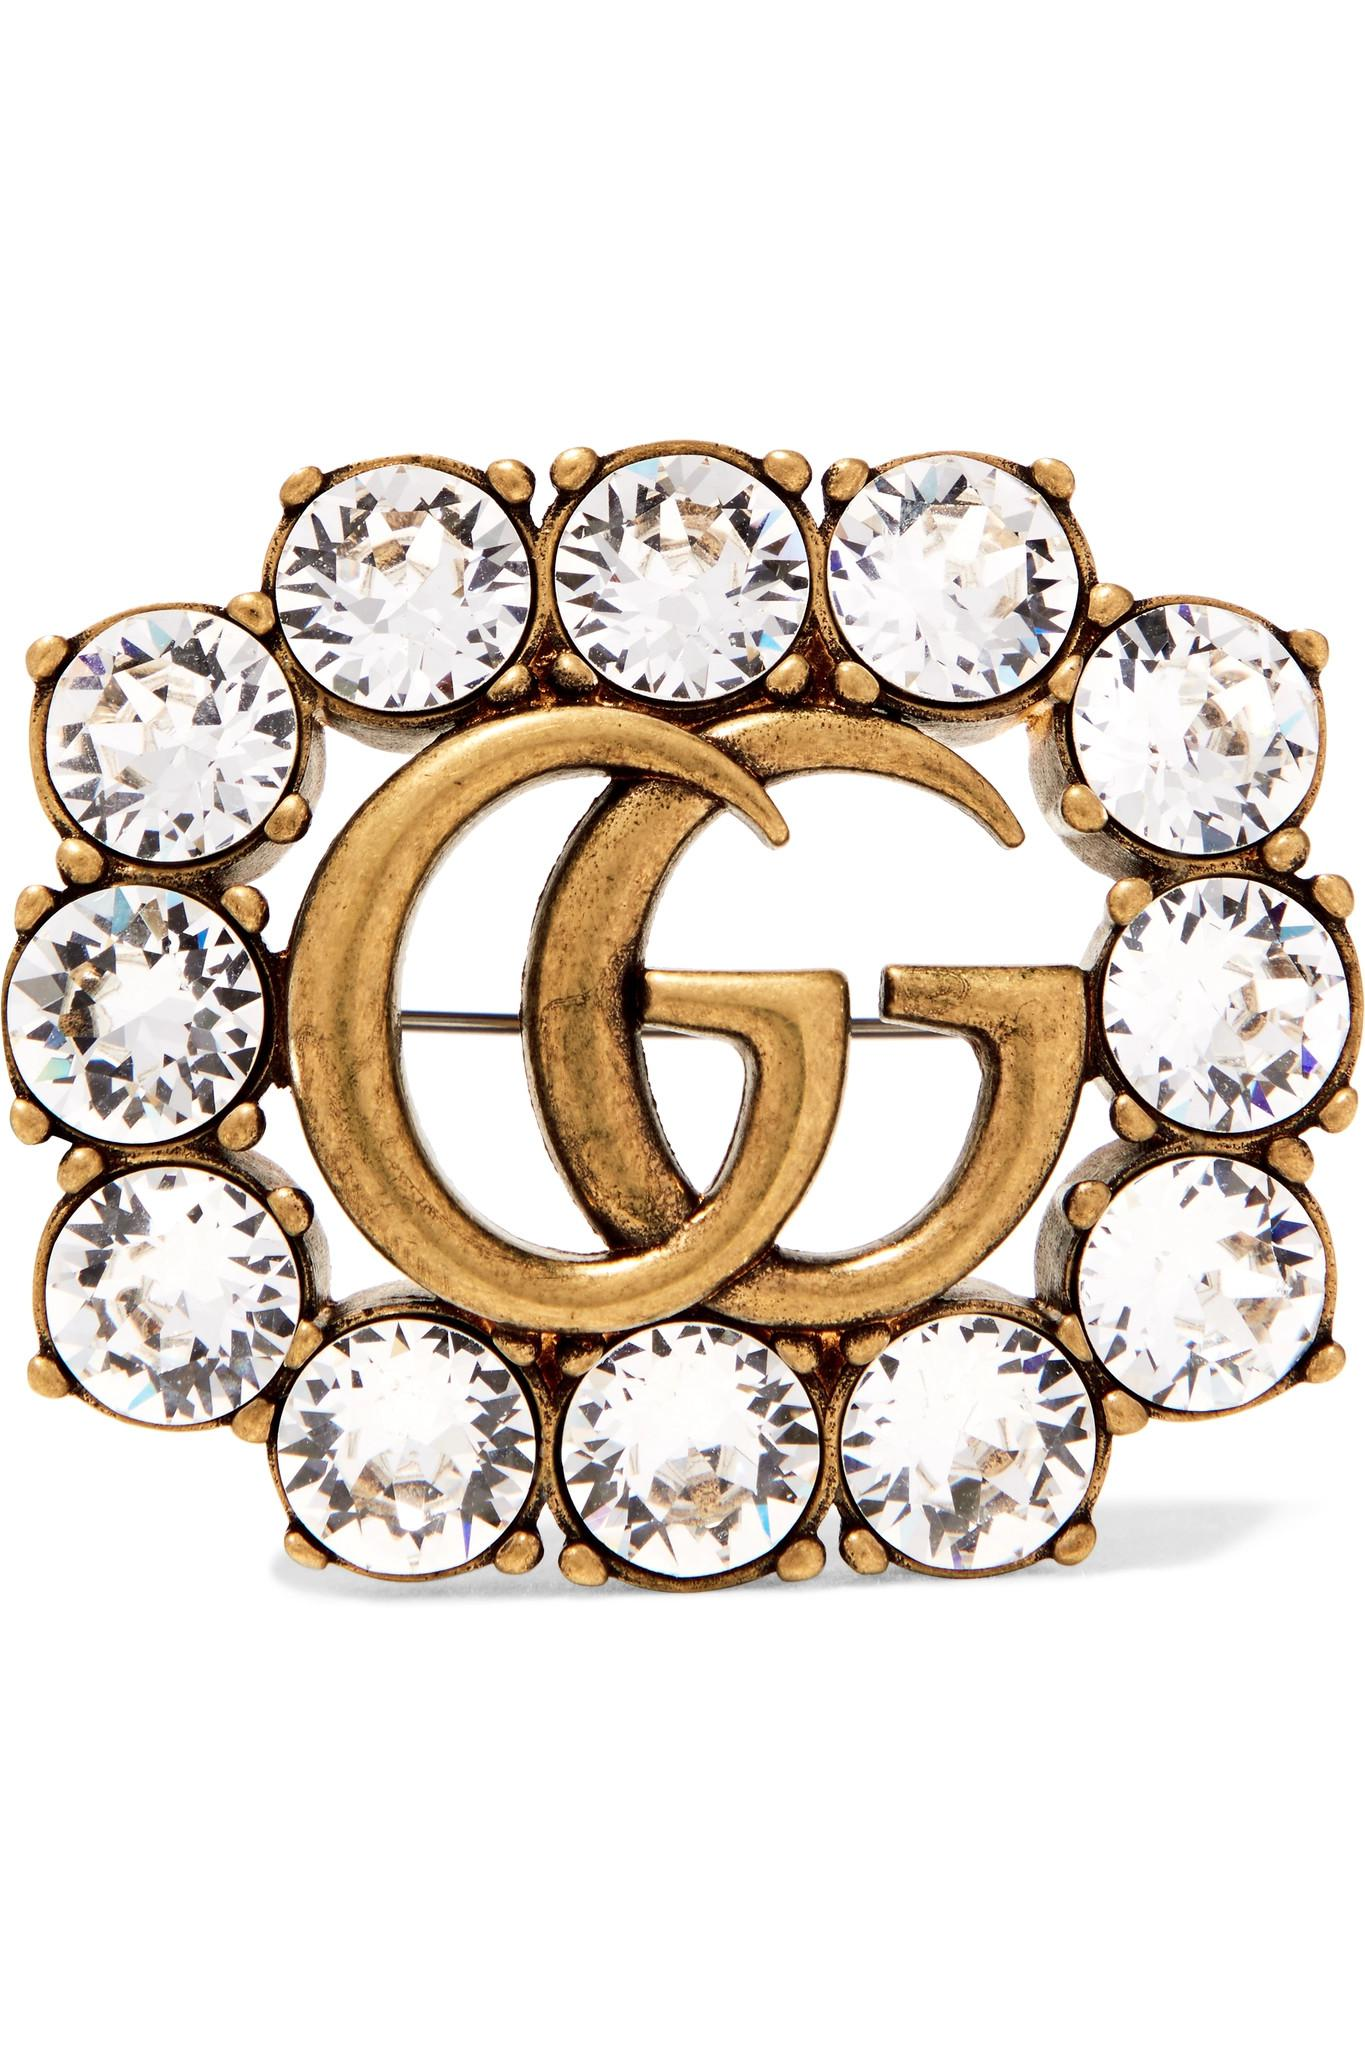 Gucci Guccy crystal brooch - Metallic gXLGTw